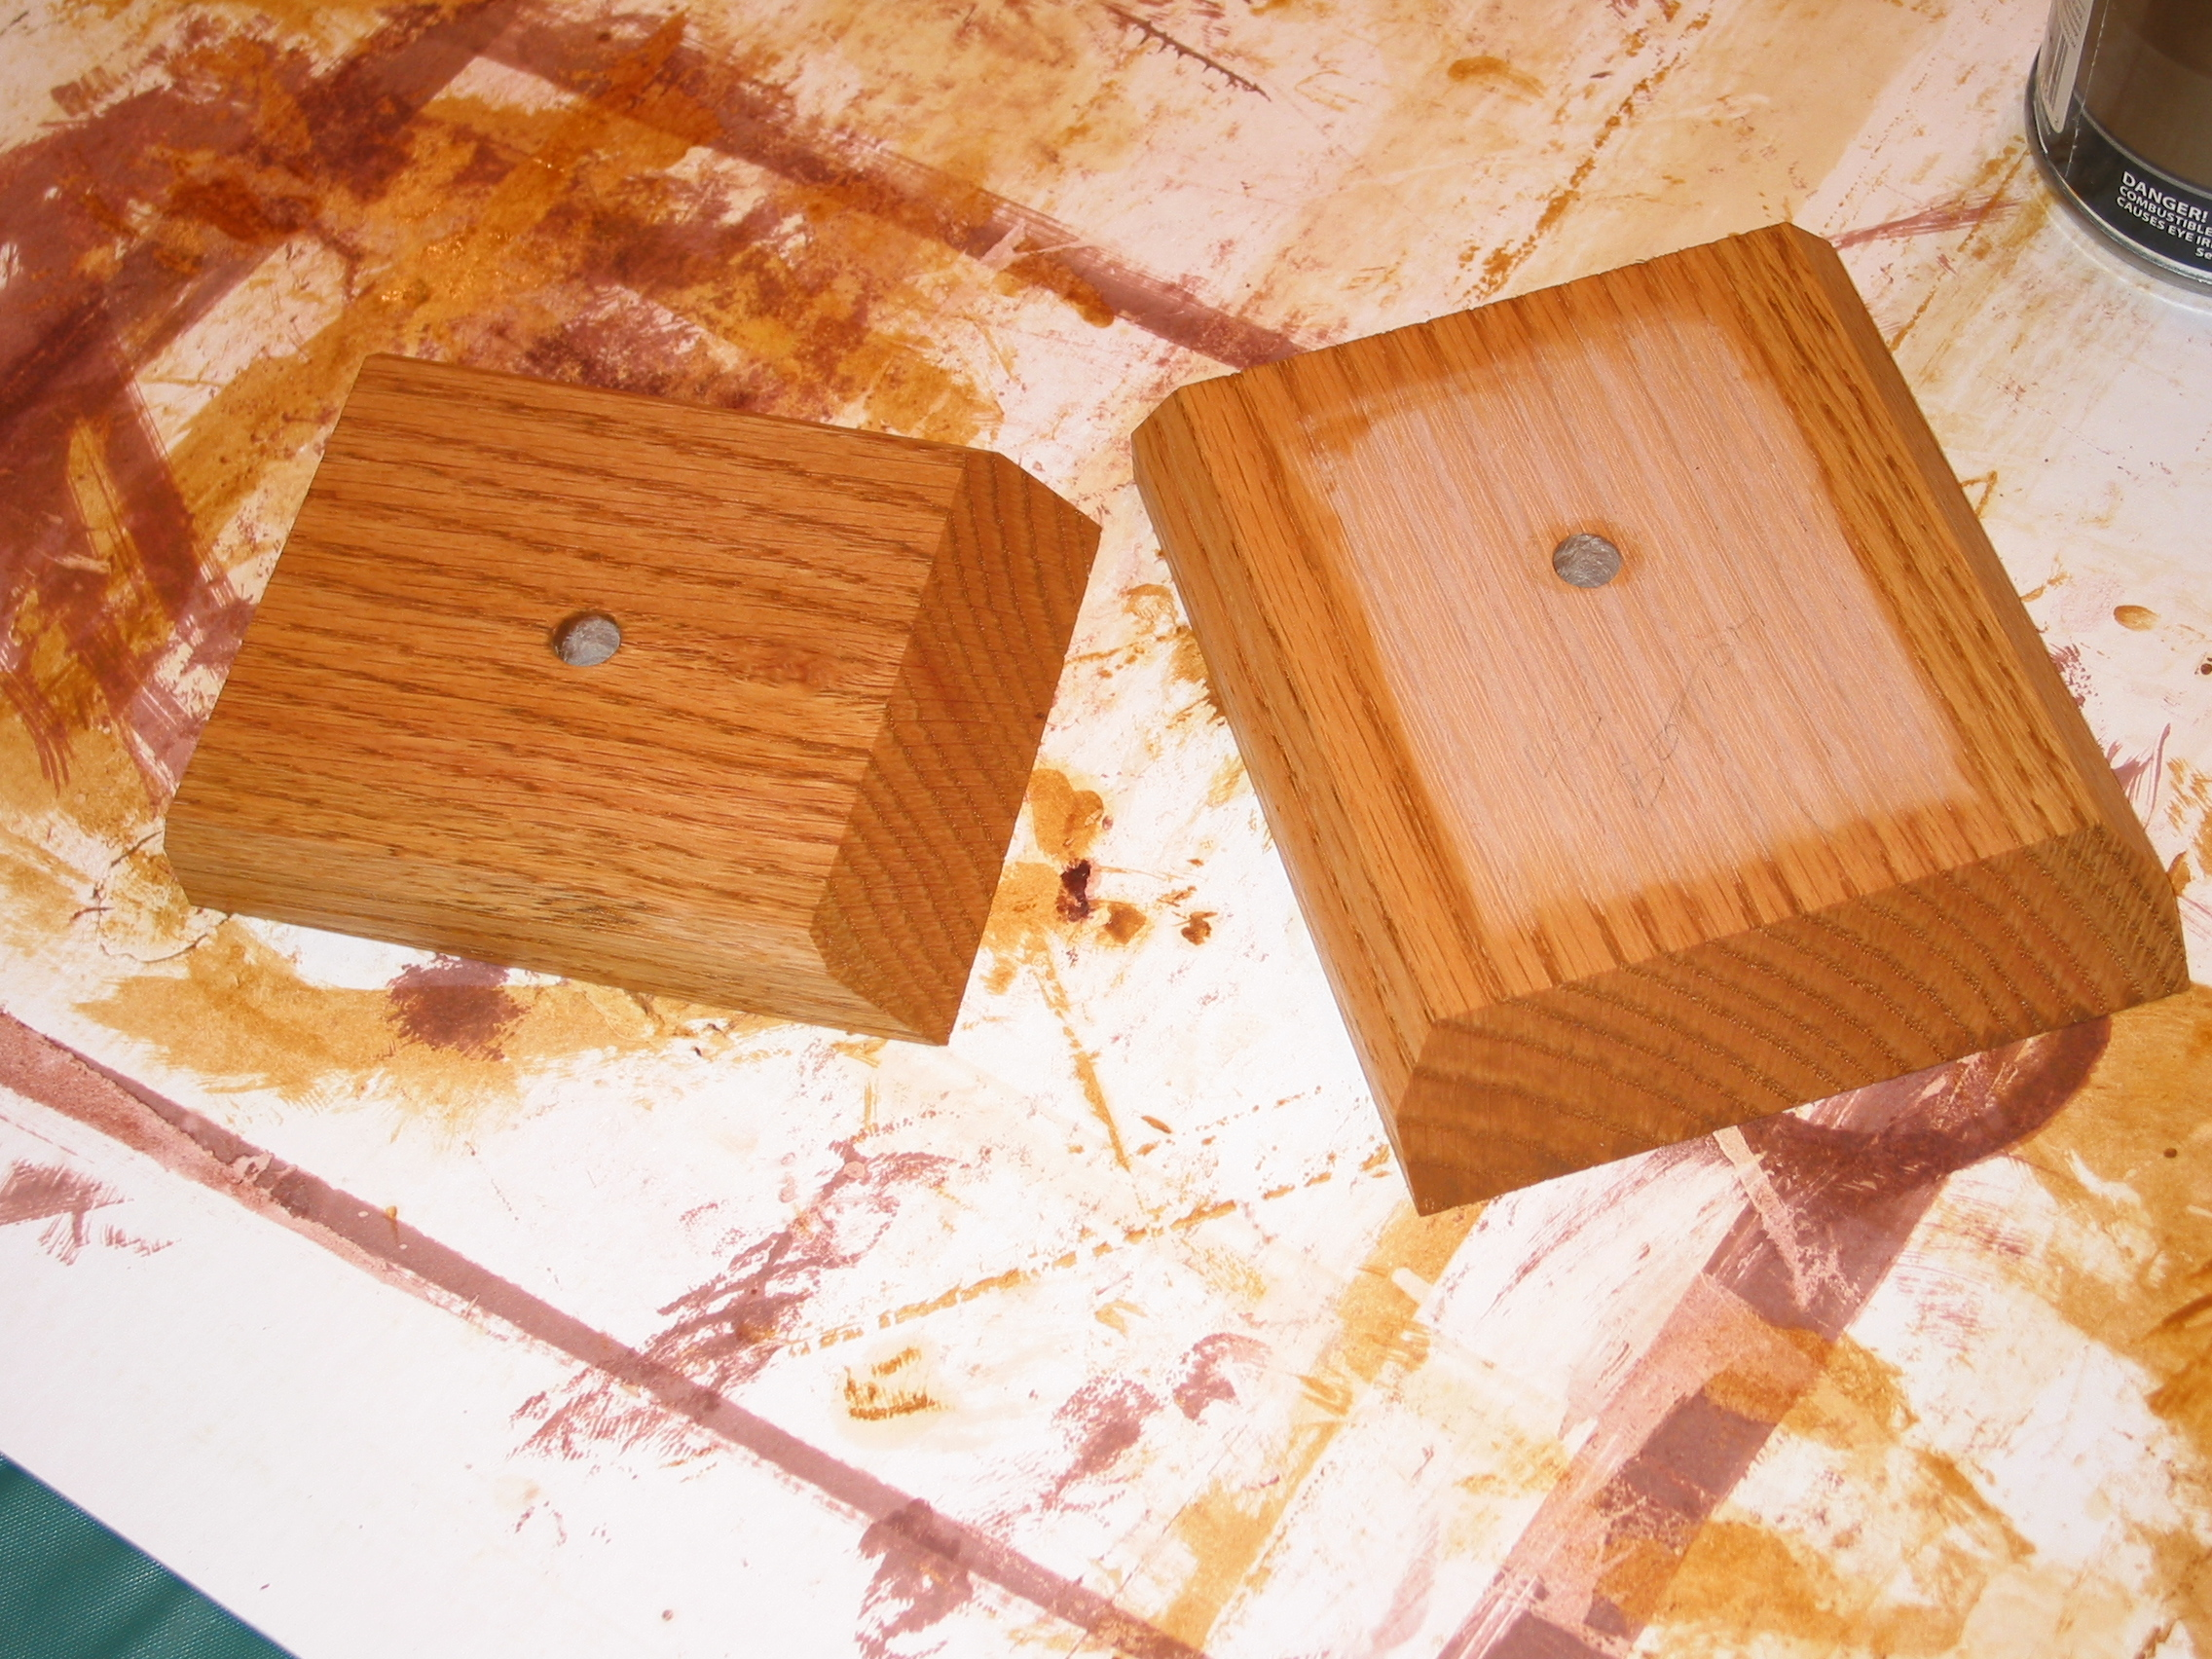 Picture of Second - Build the Base (Cut, Drill, Sand, Glue, Stain & Finish)